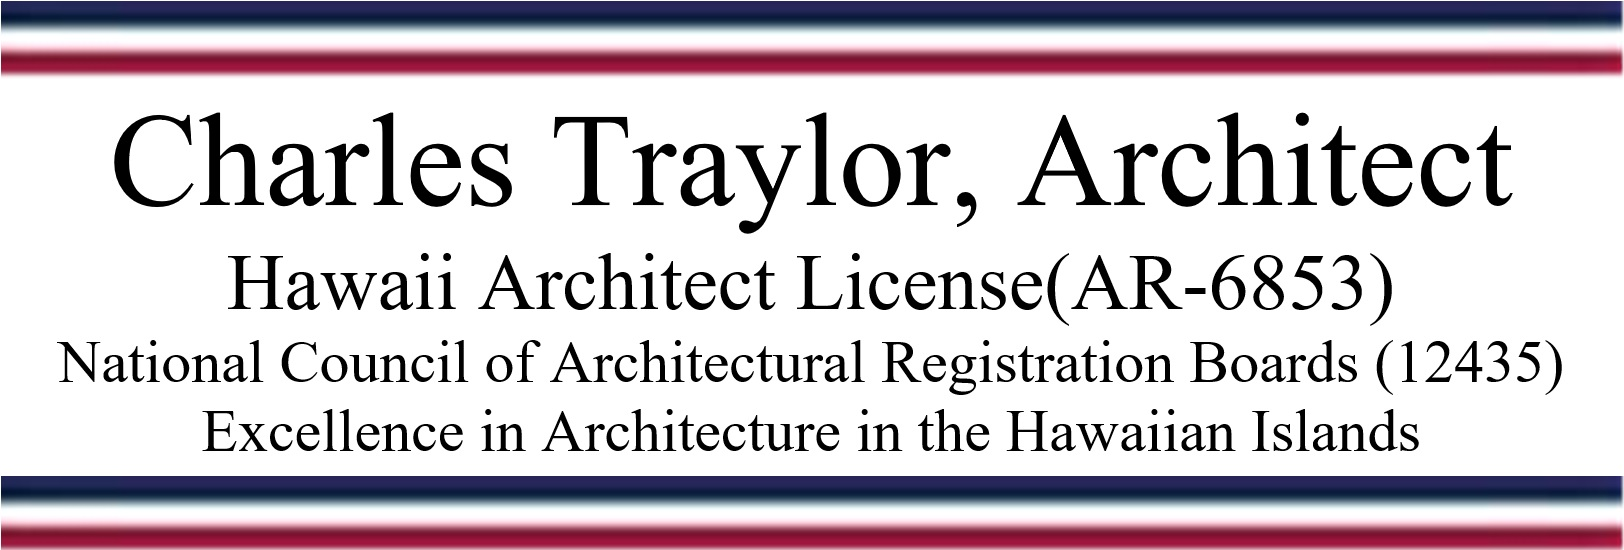 Charles Traylor, Architect